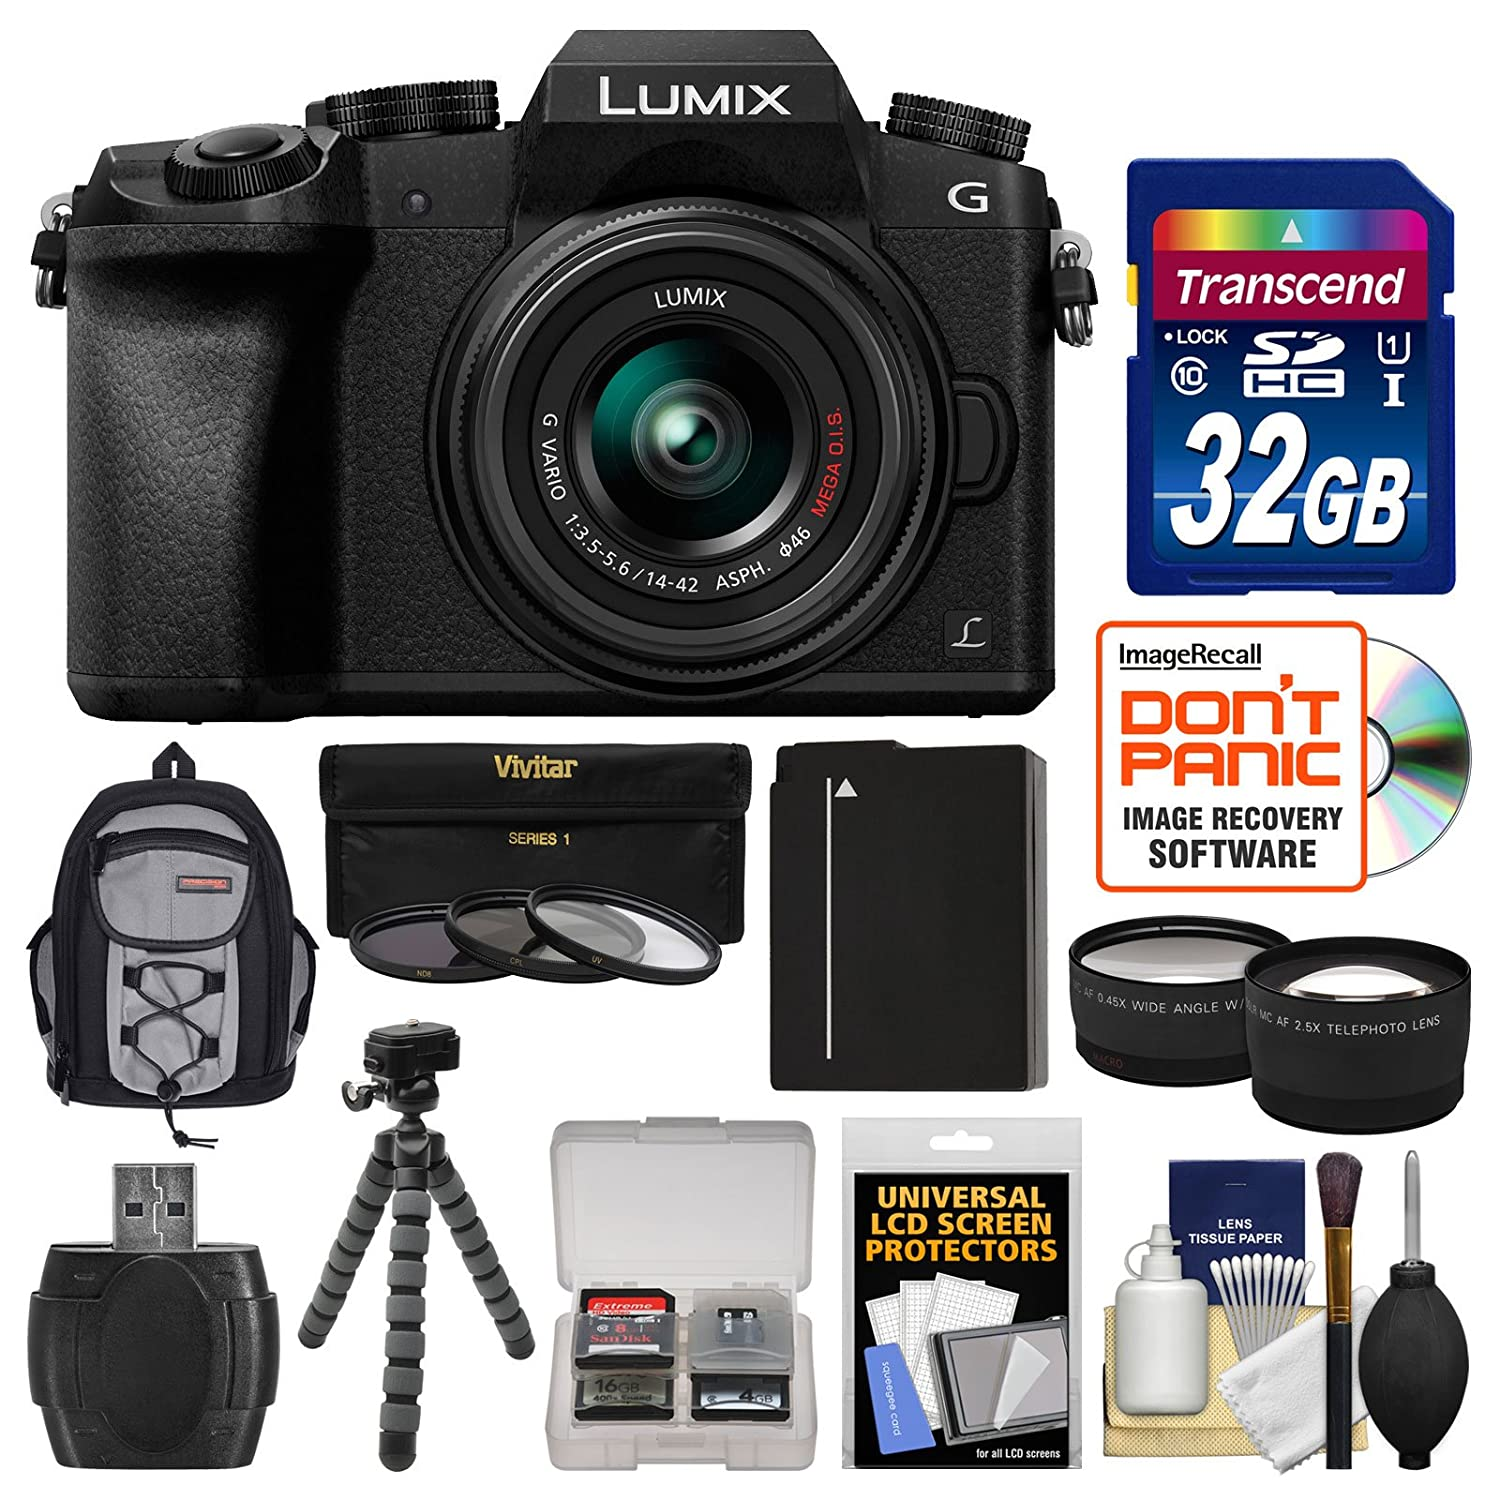 Panasonic Lumix DMC-G7 4K Wi-Fi Digital Camera & 14-42mm Lens (Black) with  32GB Card + Backpack + Battery + Flex Tripod + Filters + Tele/Wide Lens Kit